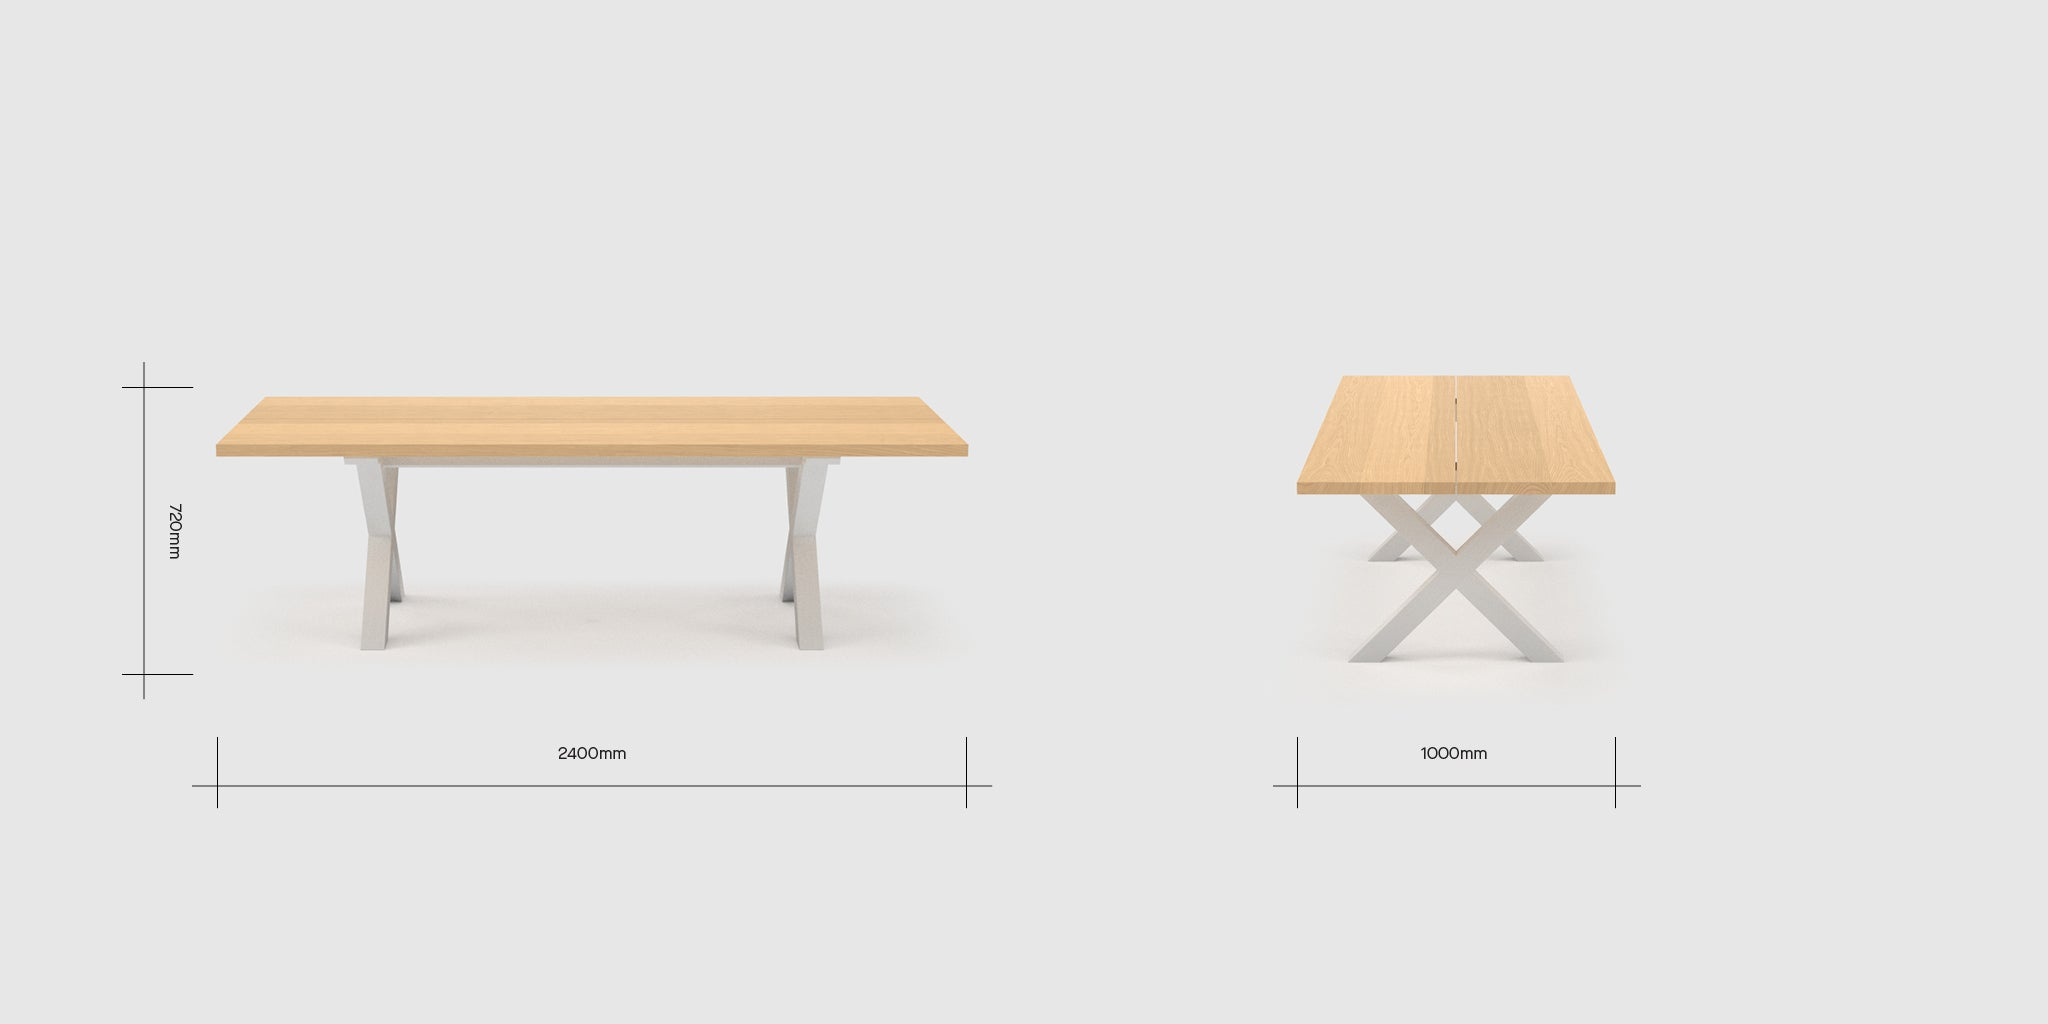 Patonga 8 Person Table Dimensions